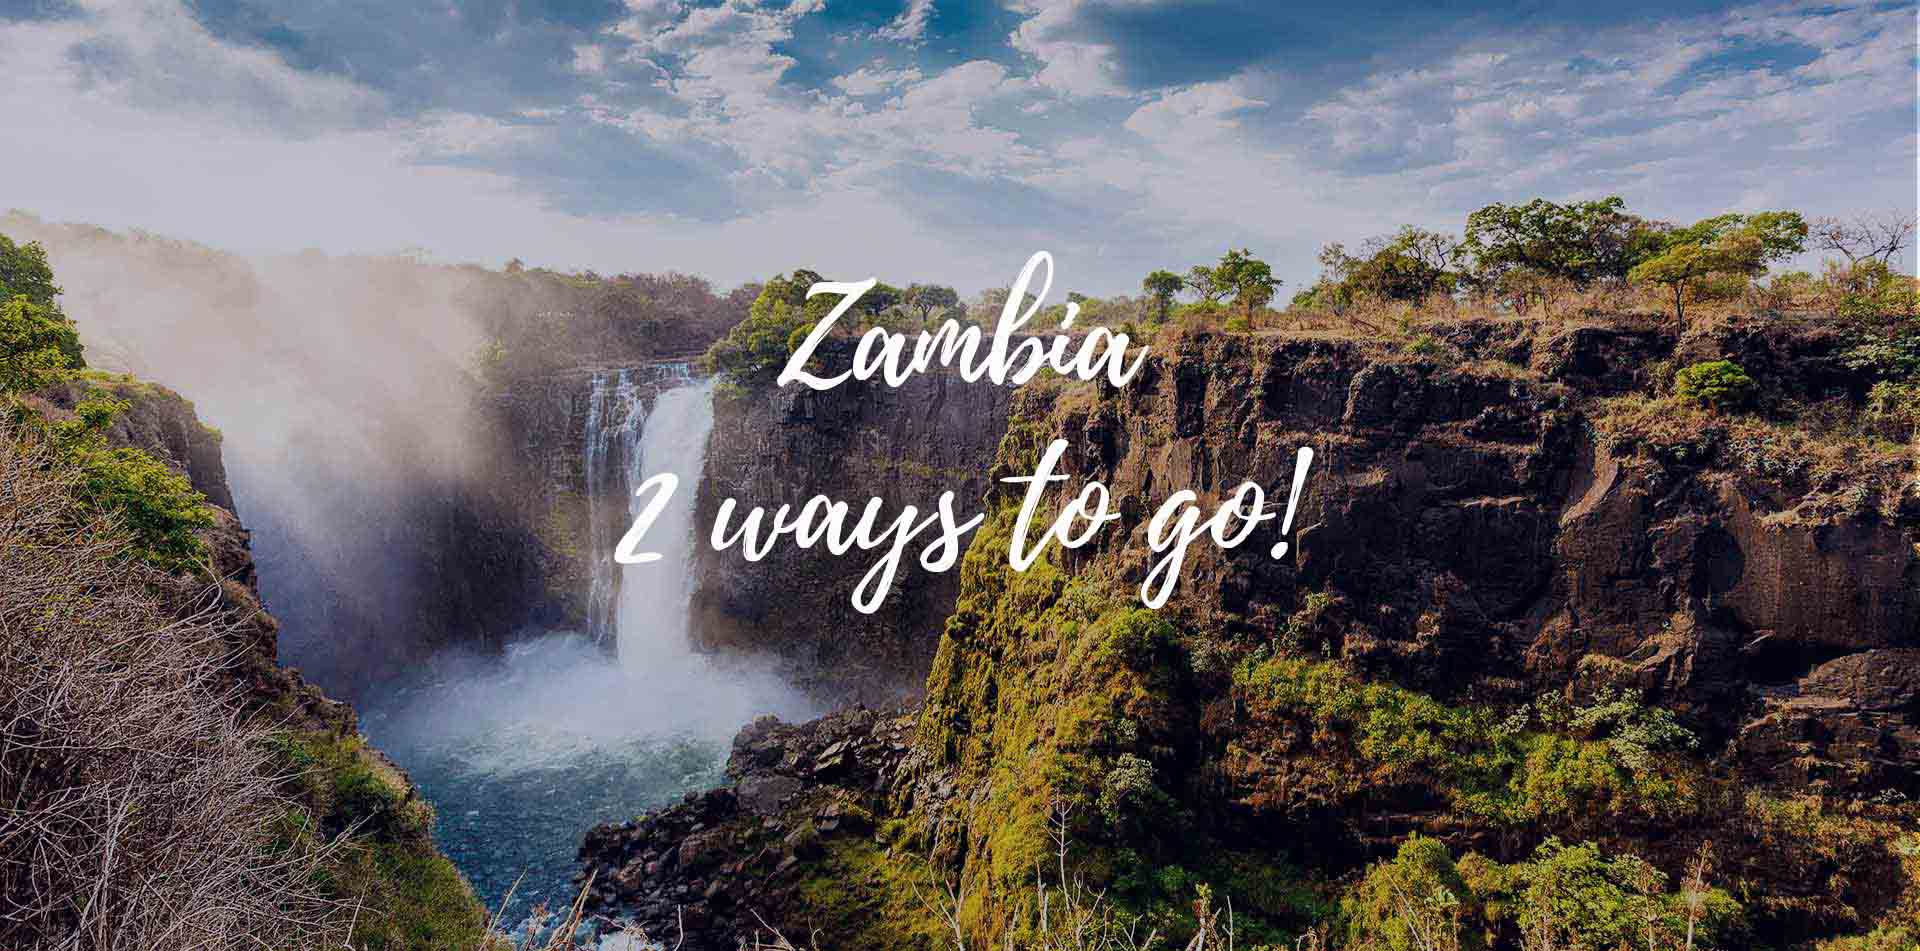 Africa Zambia natural secluded waterfall on a nature trail 2 ways to go - luxury vacation destinations